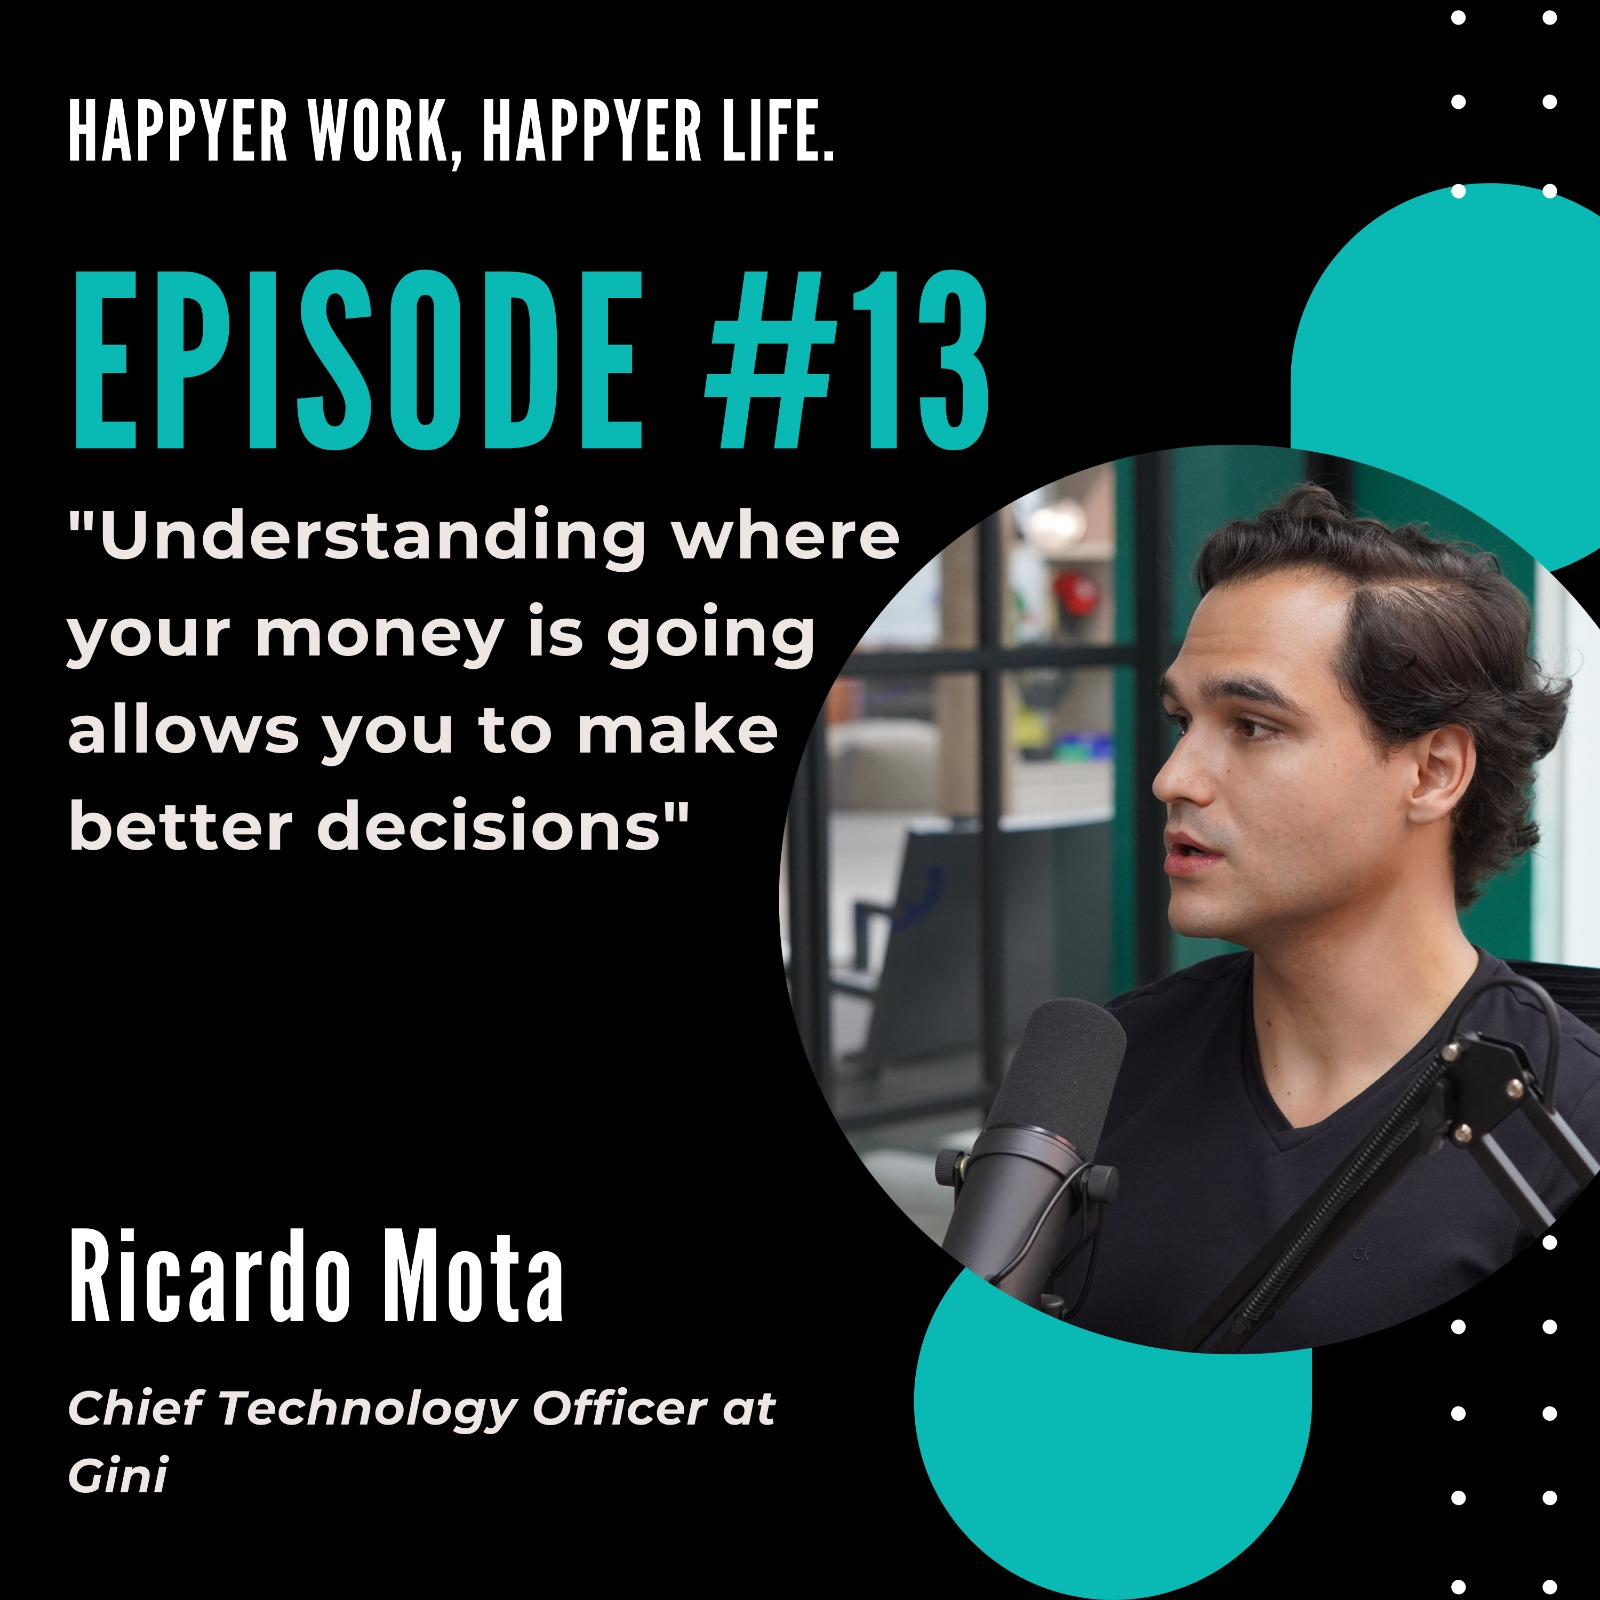 Ricardo Mota provides us with the ultimate advice on how to succeed in your career